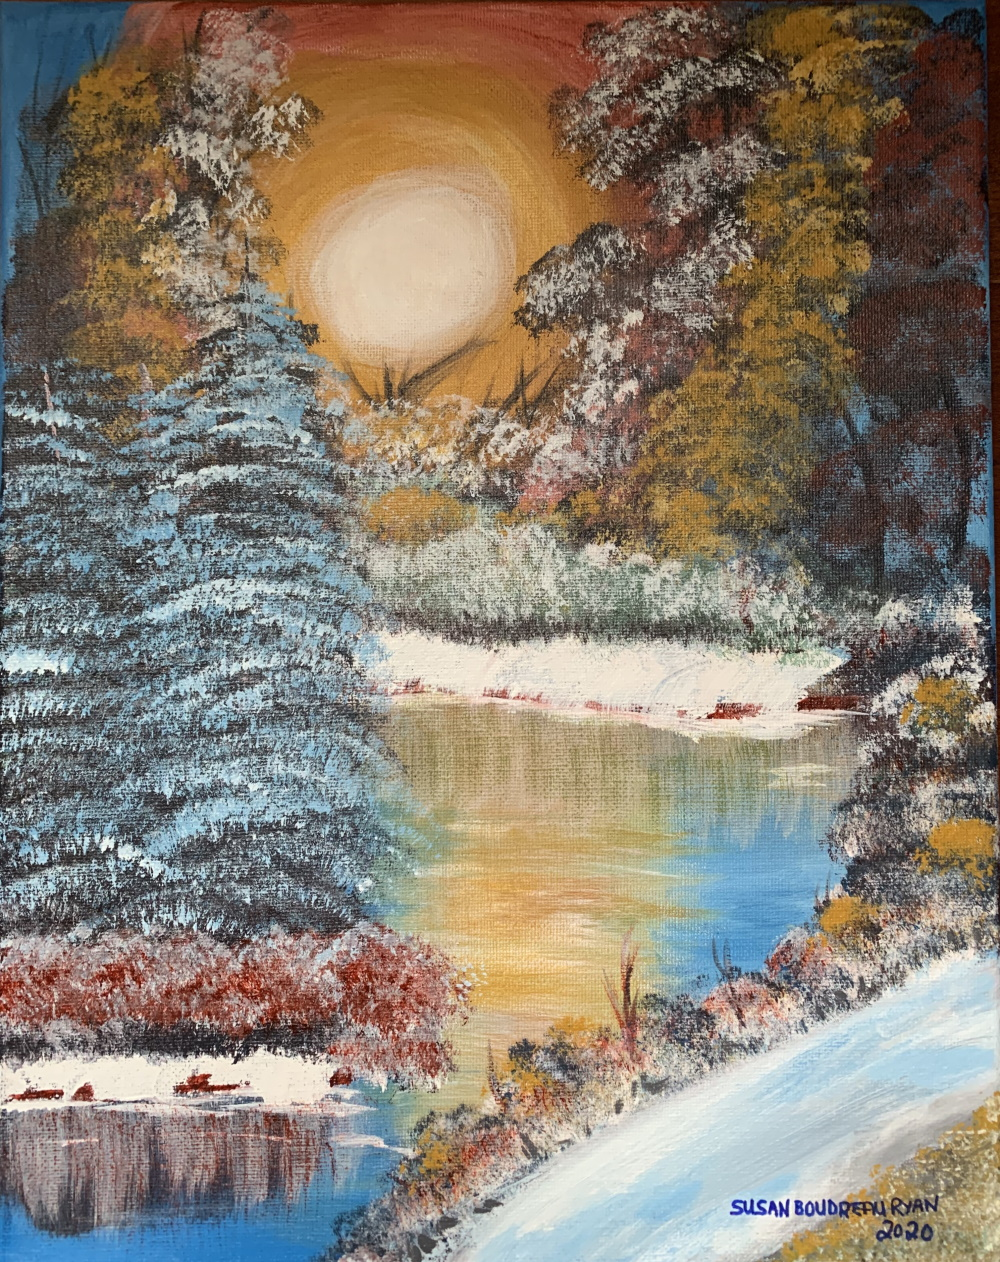 Susan Boudreau Ryan WInter Sunset